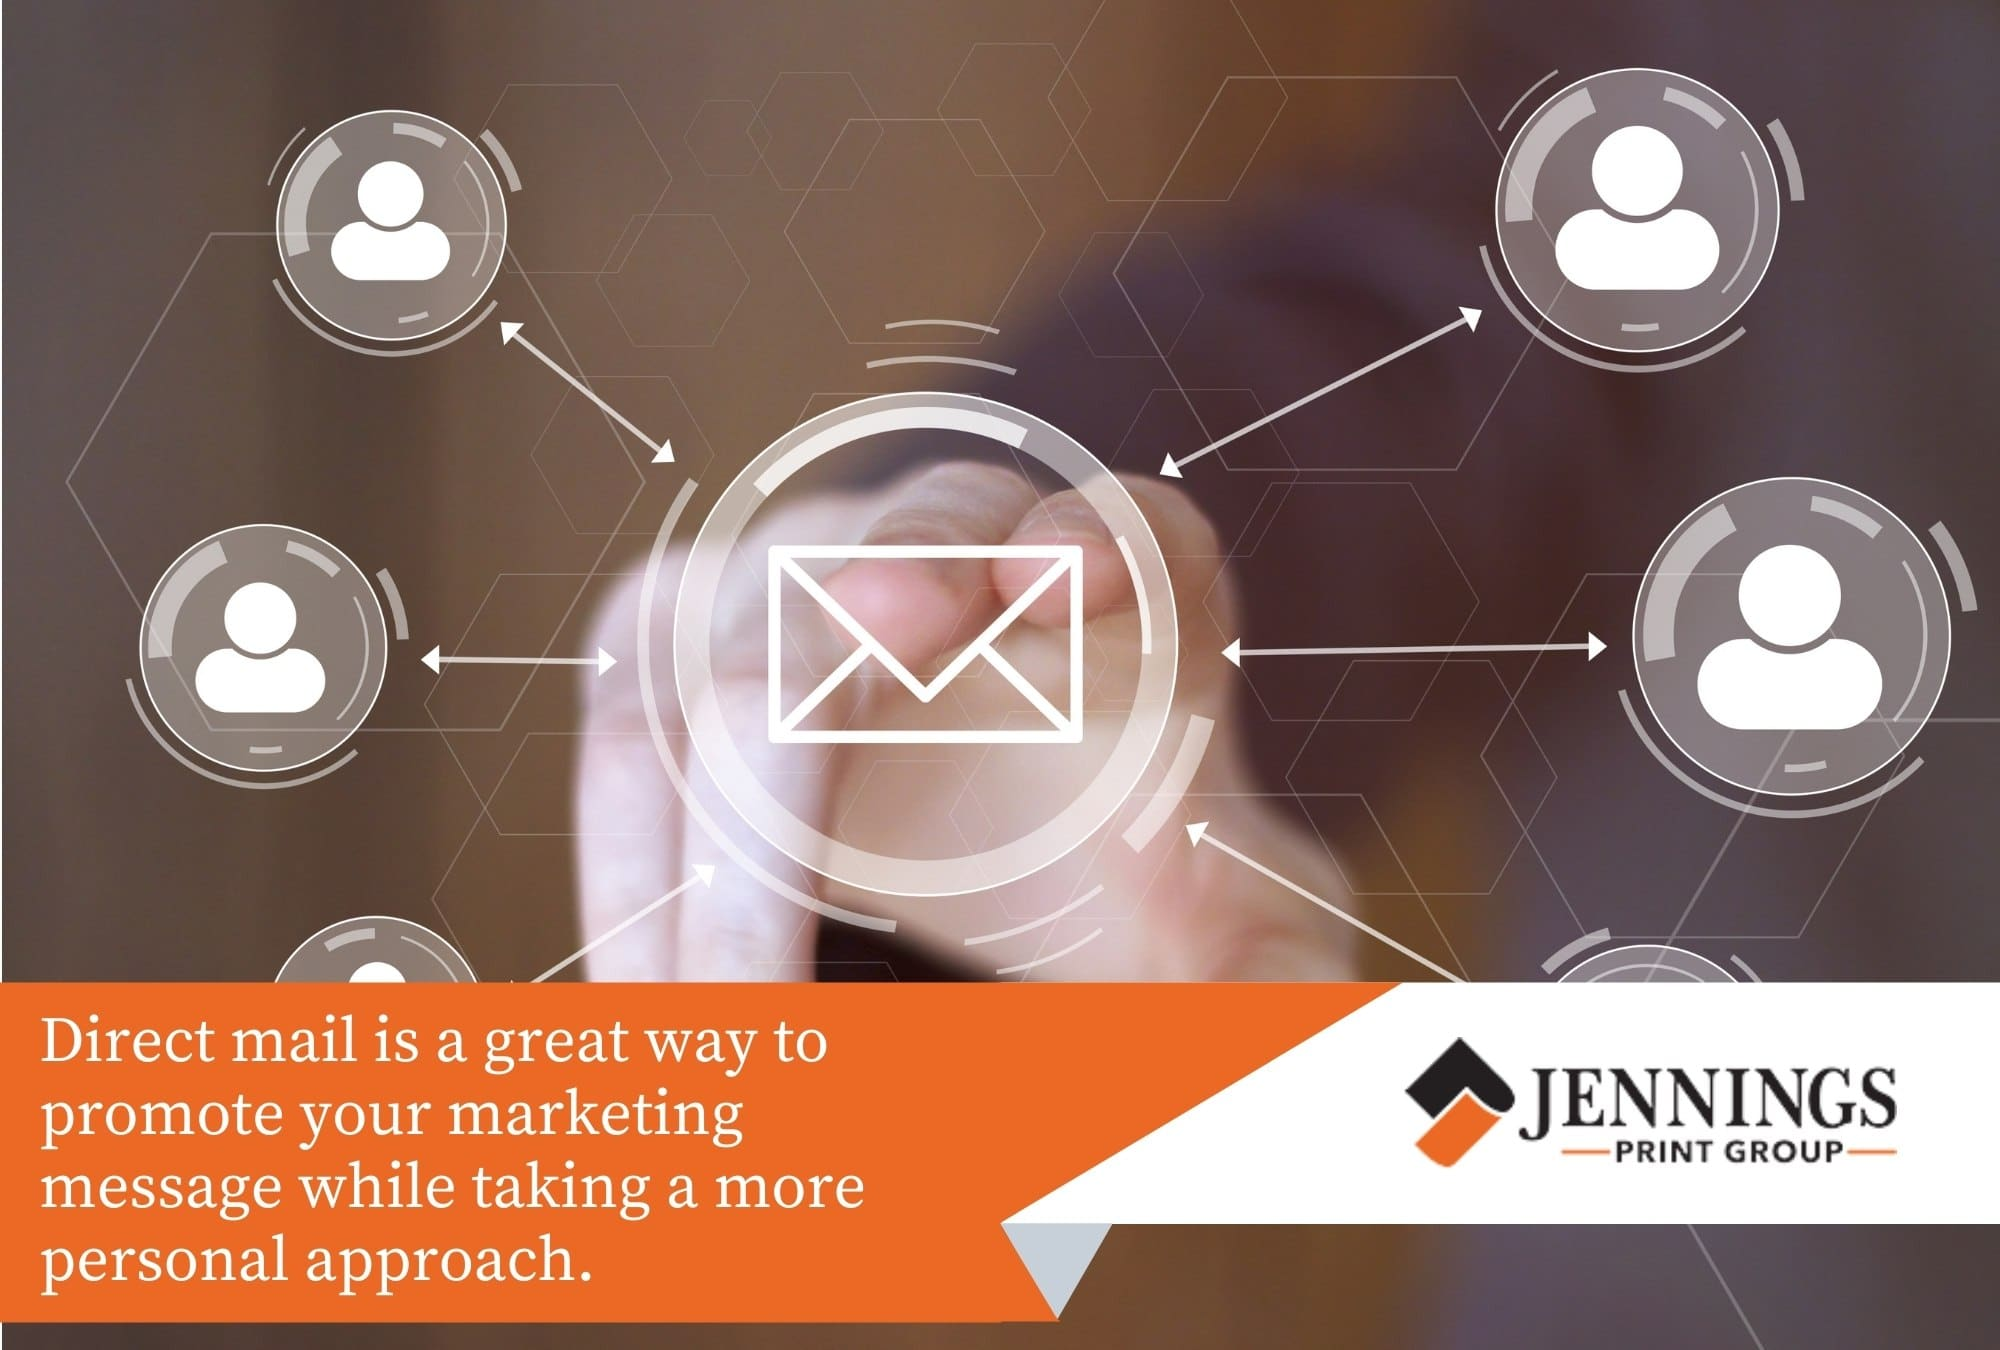 Create Direct Mail to Reach Out to More Prospects